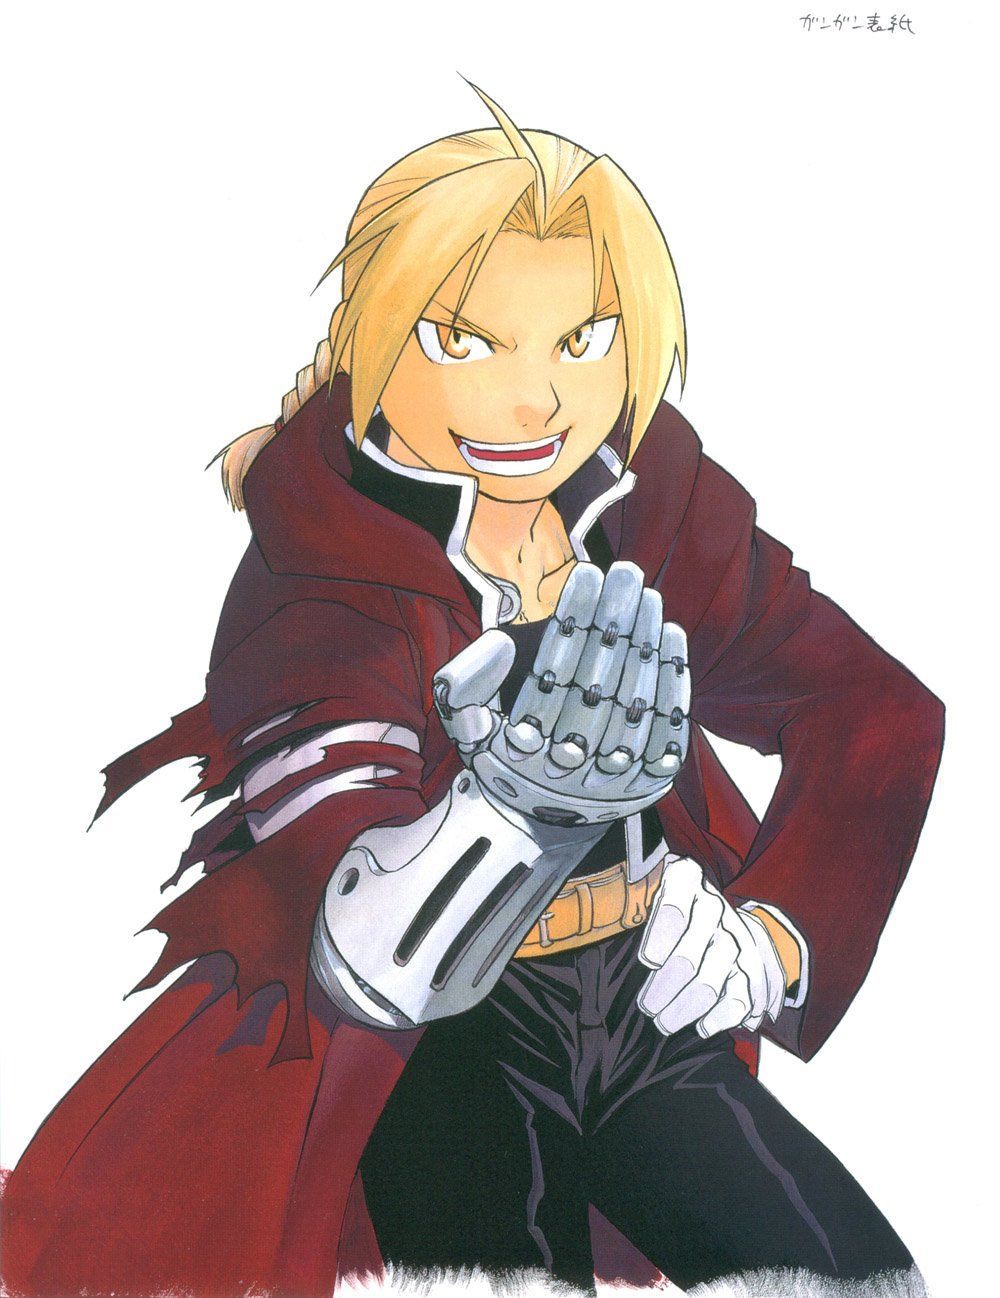 fullmetalalchemist-illustrations-70